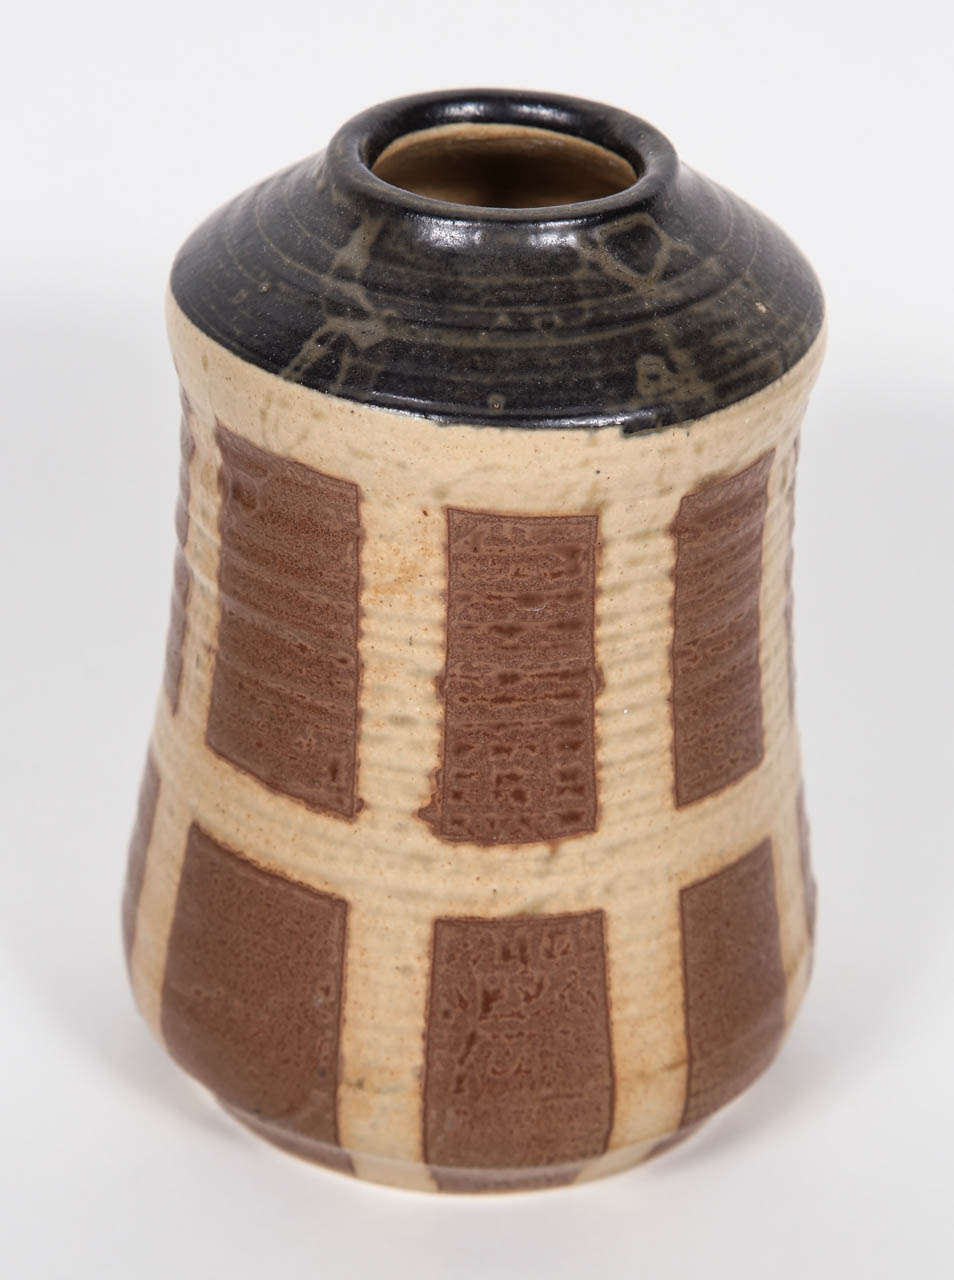 Matte glazed studio pottery with graphic checker pattern.